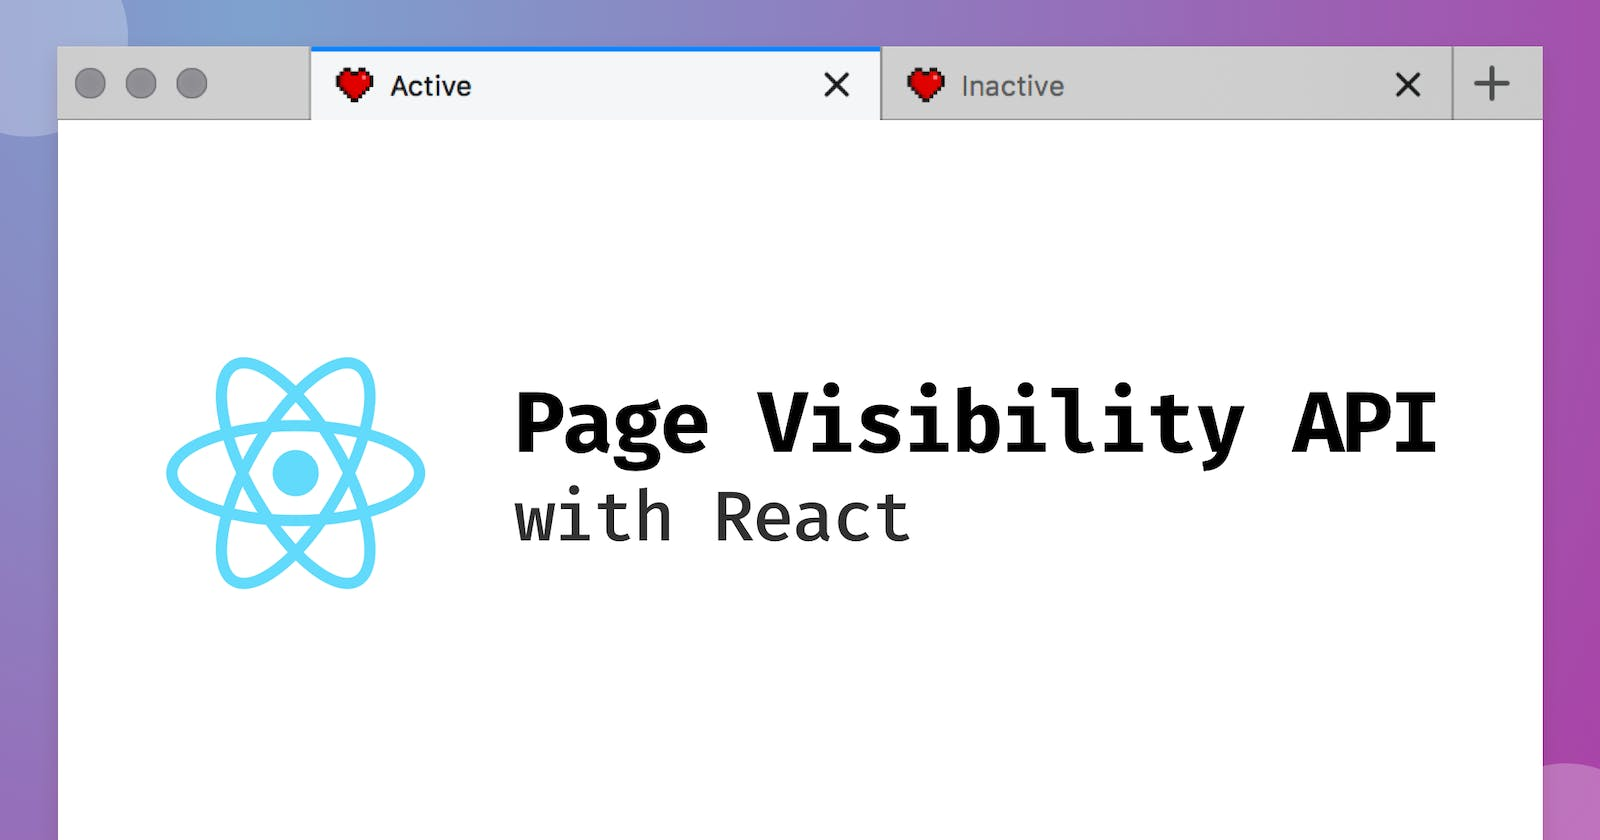 Harnessing the Page Visibility API with React